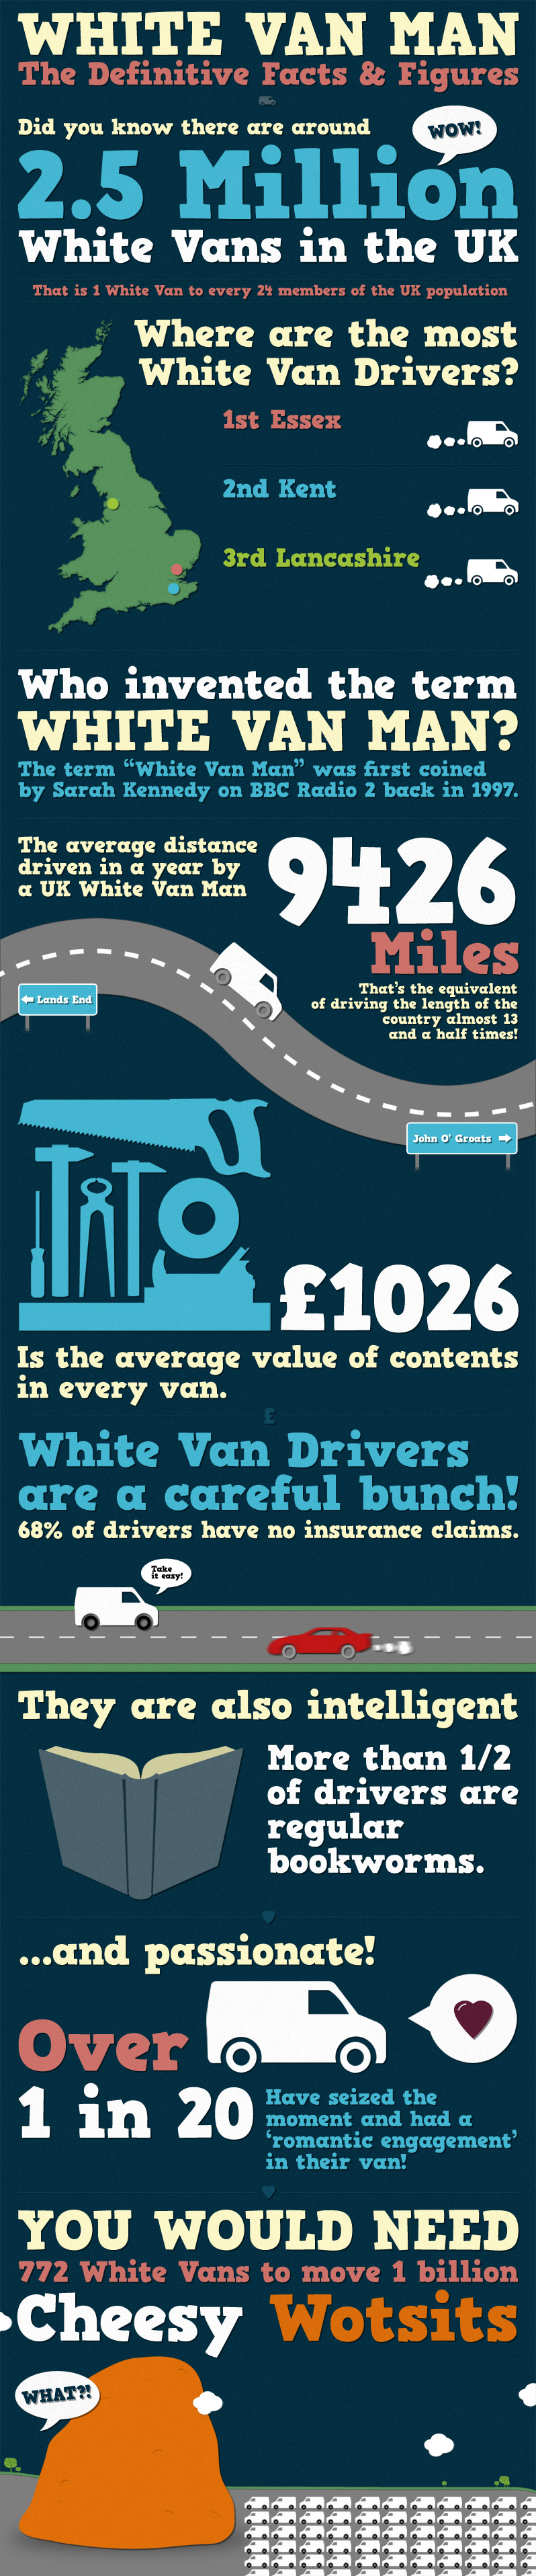 White Van - The Definitive Facts & Figures